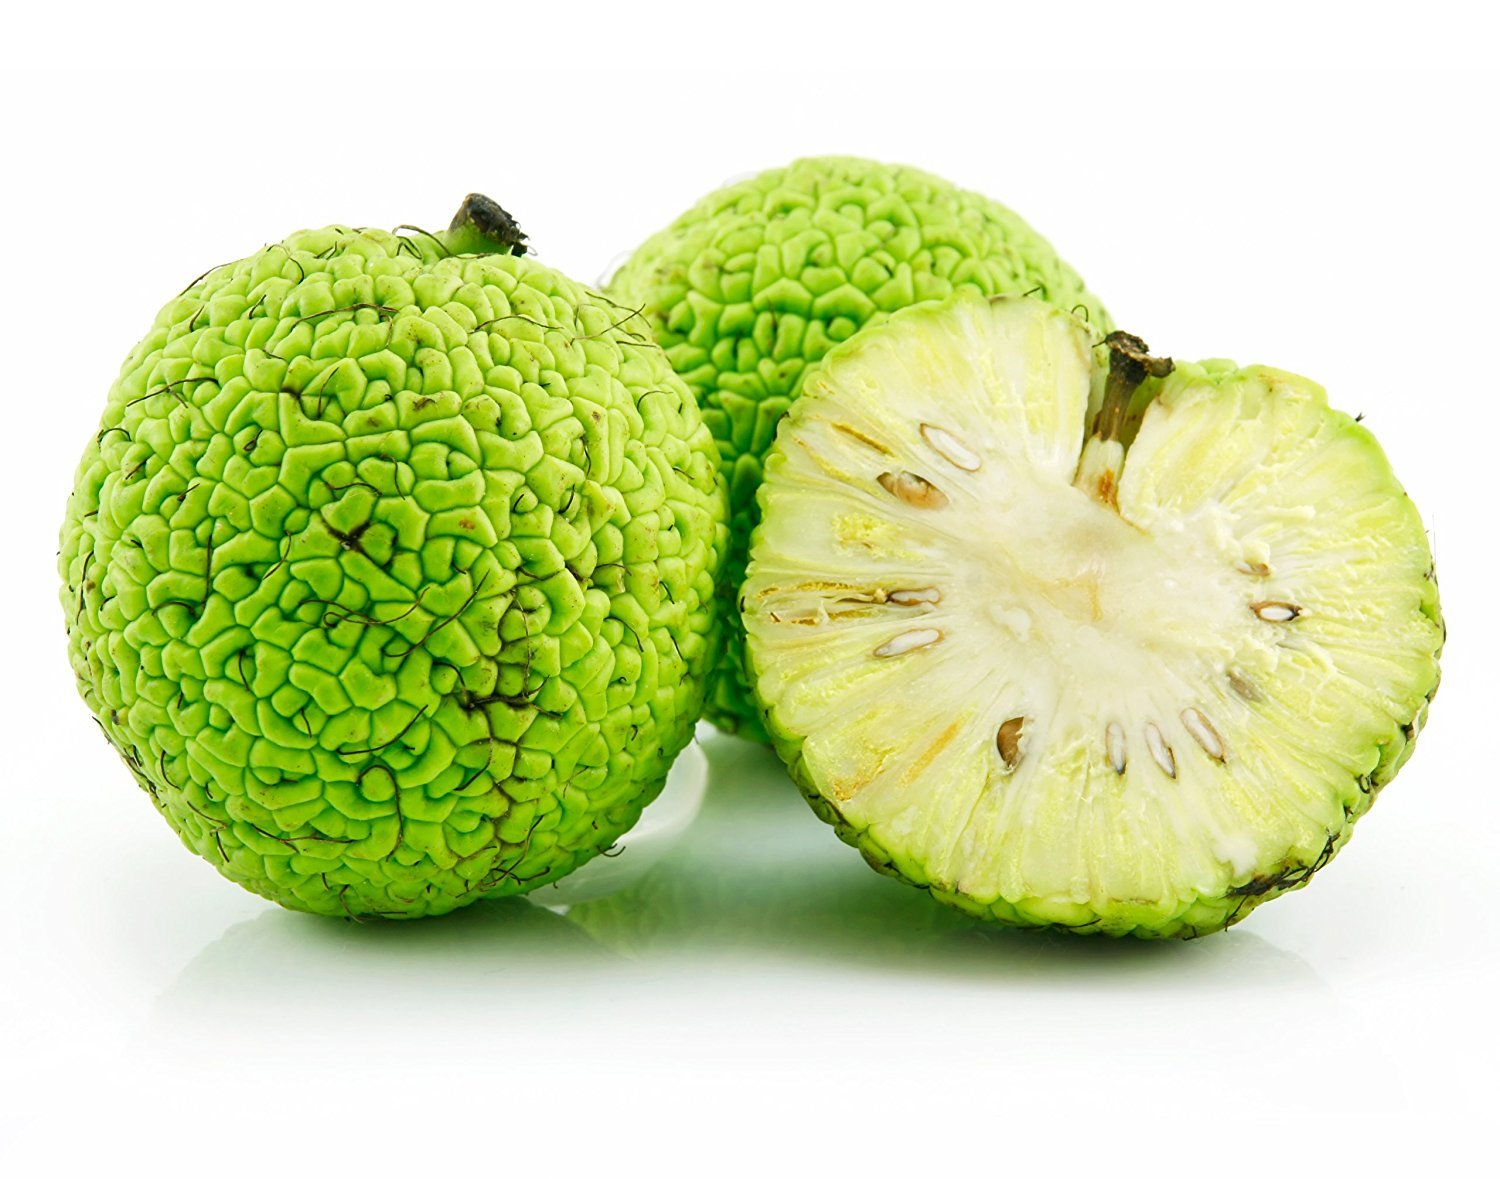 10 Osage Oranges, Hedge Apples - Natural Insect and Spider Repellent by Simply Better